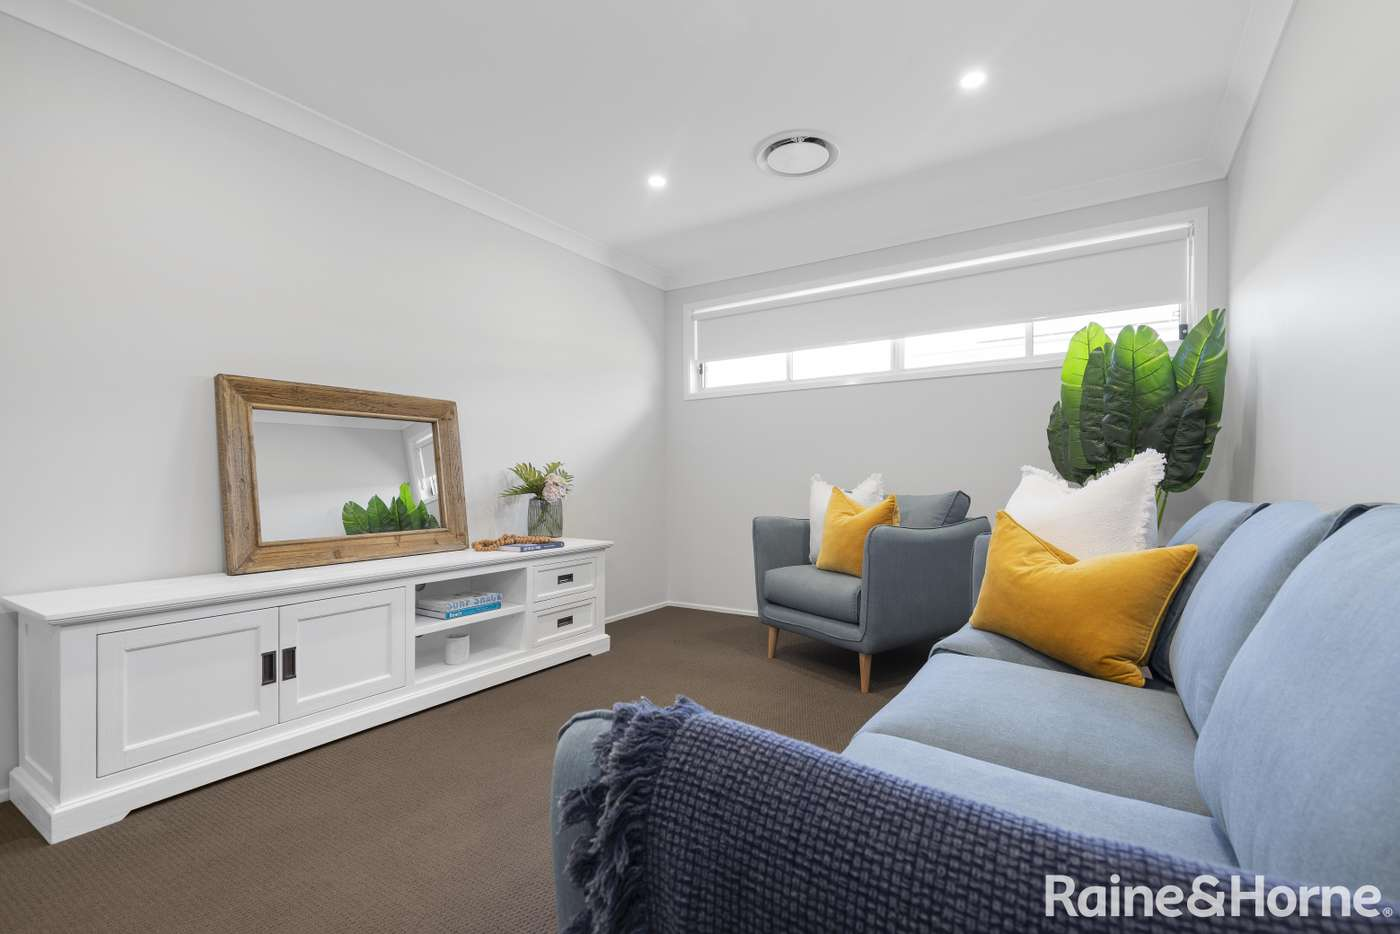 Fifth view of Homely house listing, 41 Gemini Way, Narrawallee NSW 2539